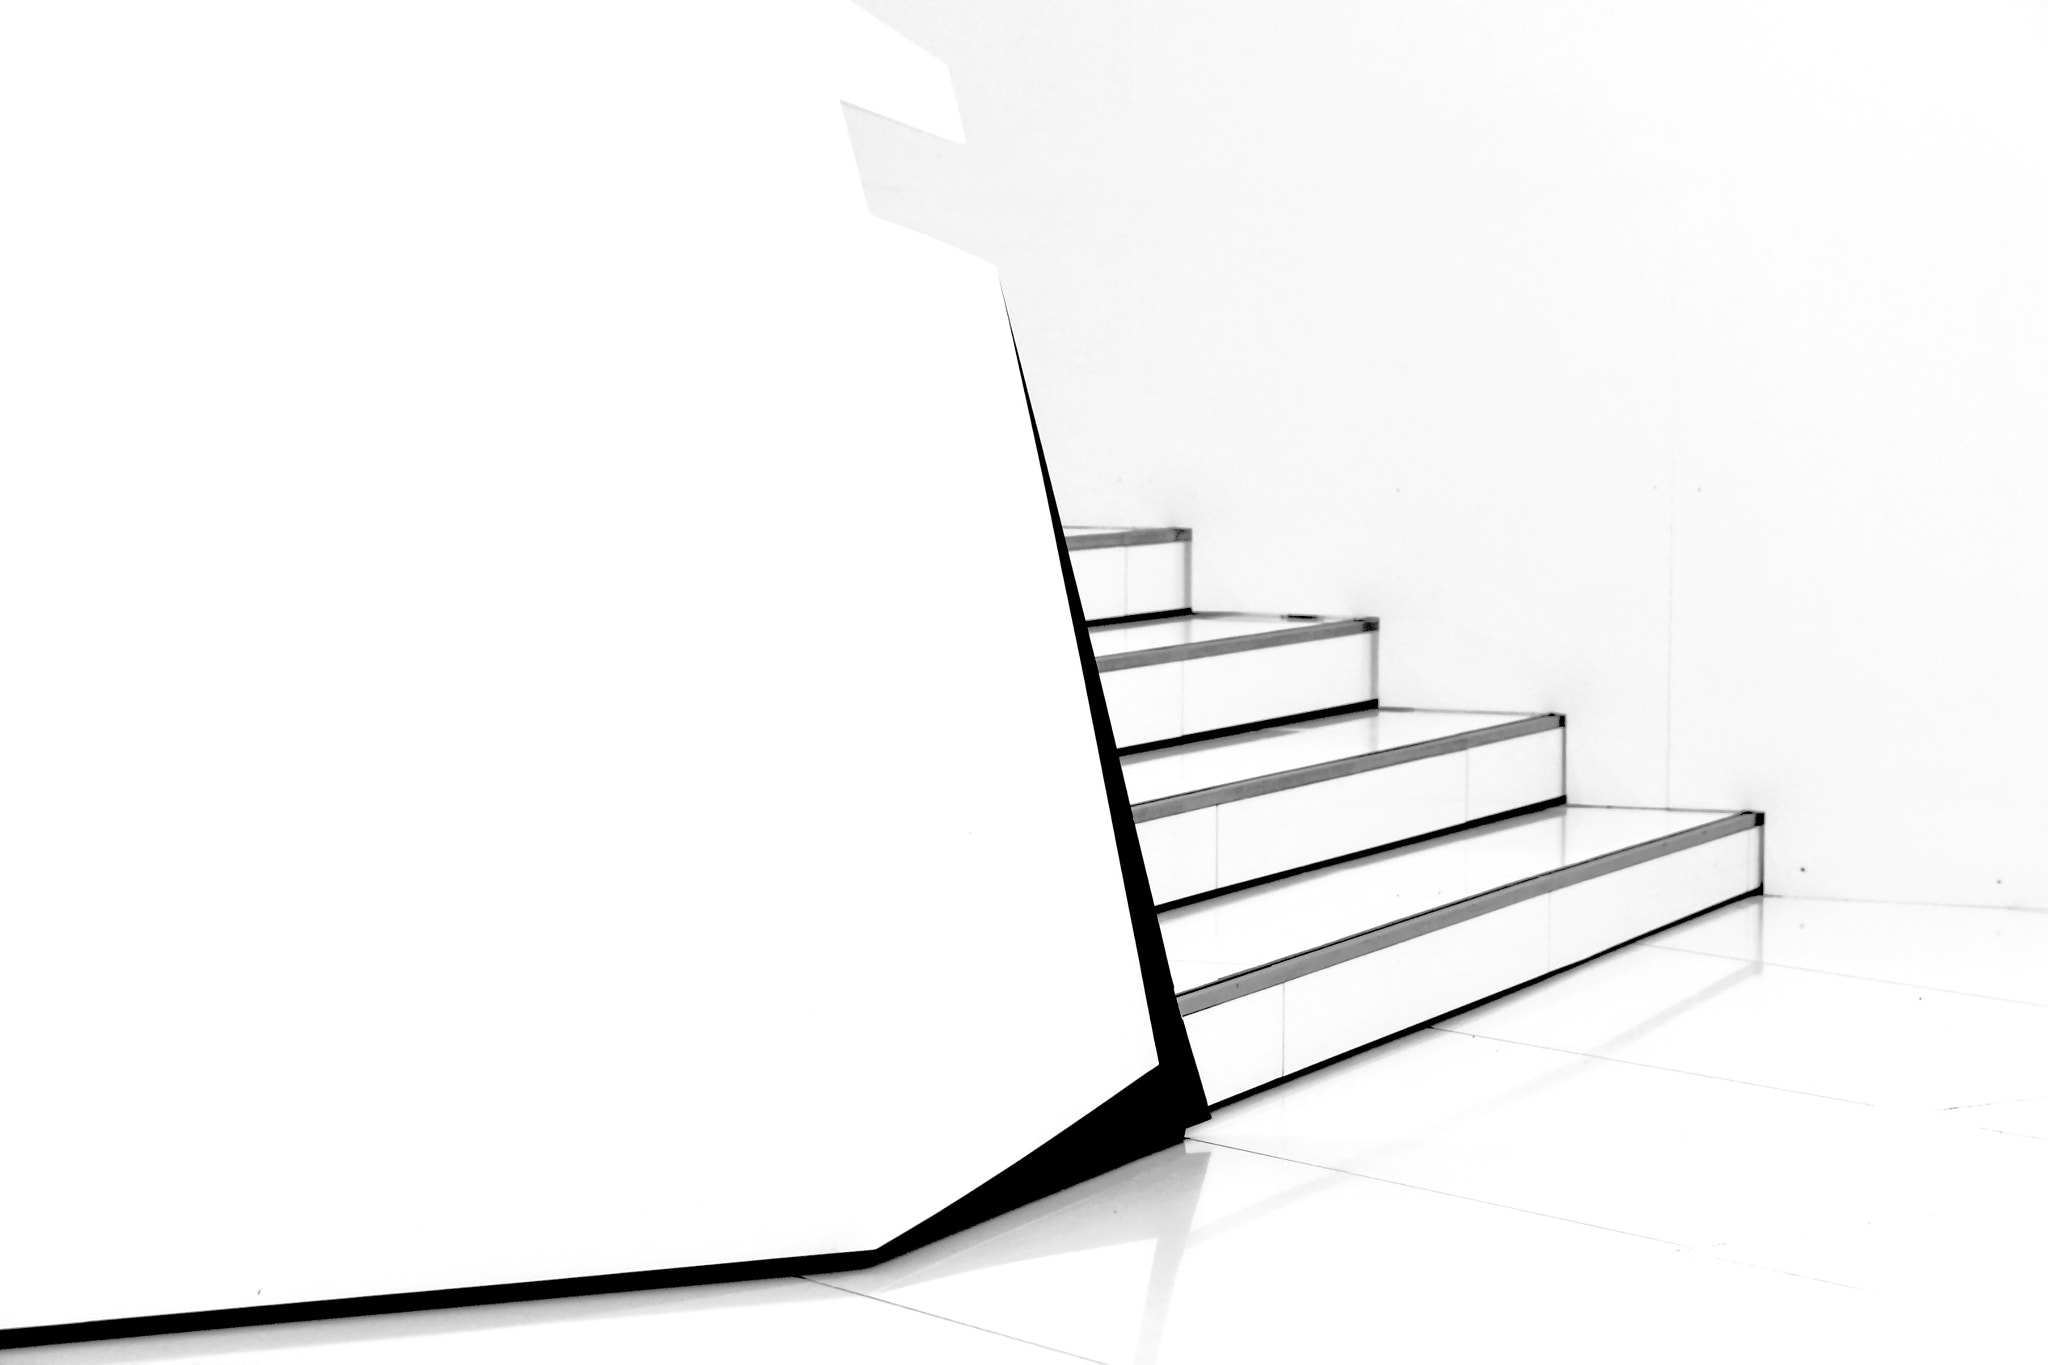 Photograph stairway by Sven Sauerland on 500px